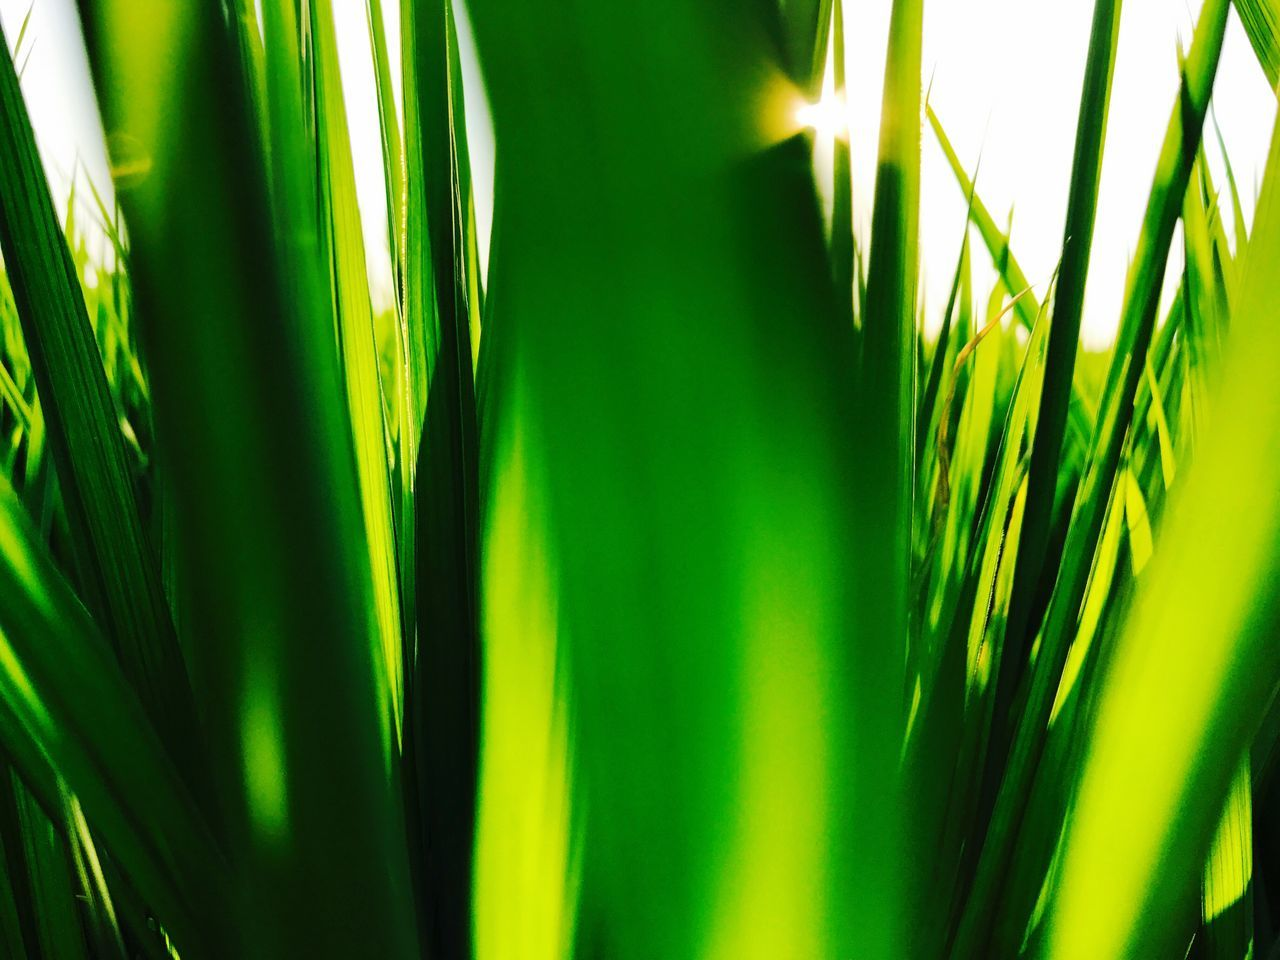 green color, growth, nature, close-up, plant, backgrounds, day, no people, grass, palm tree, outdoors, beauty in nature, freshness